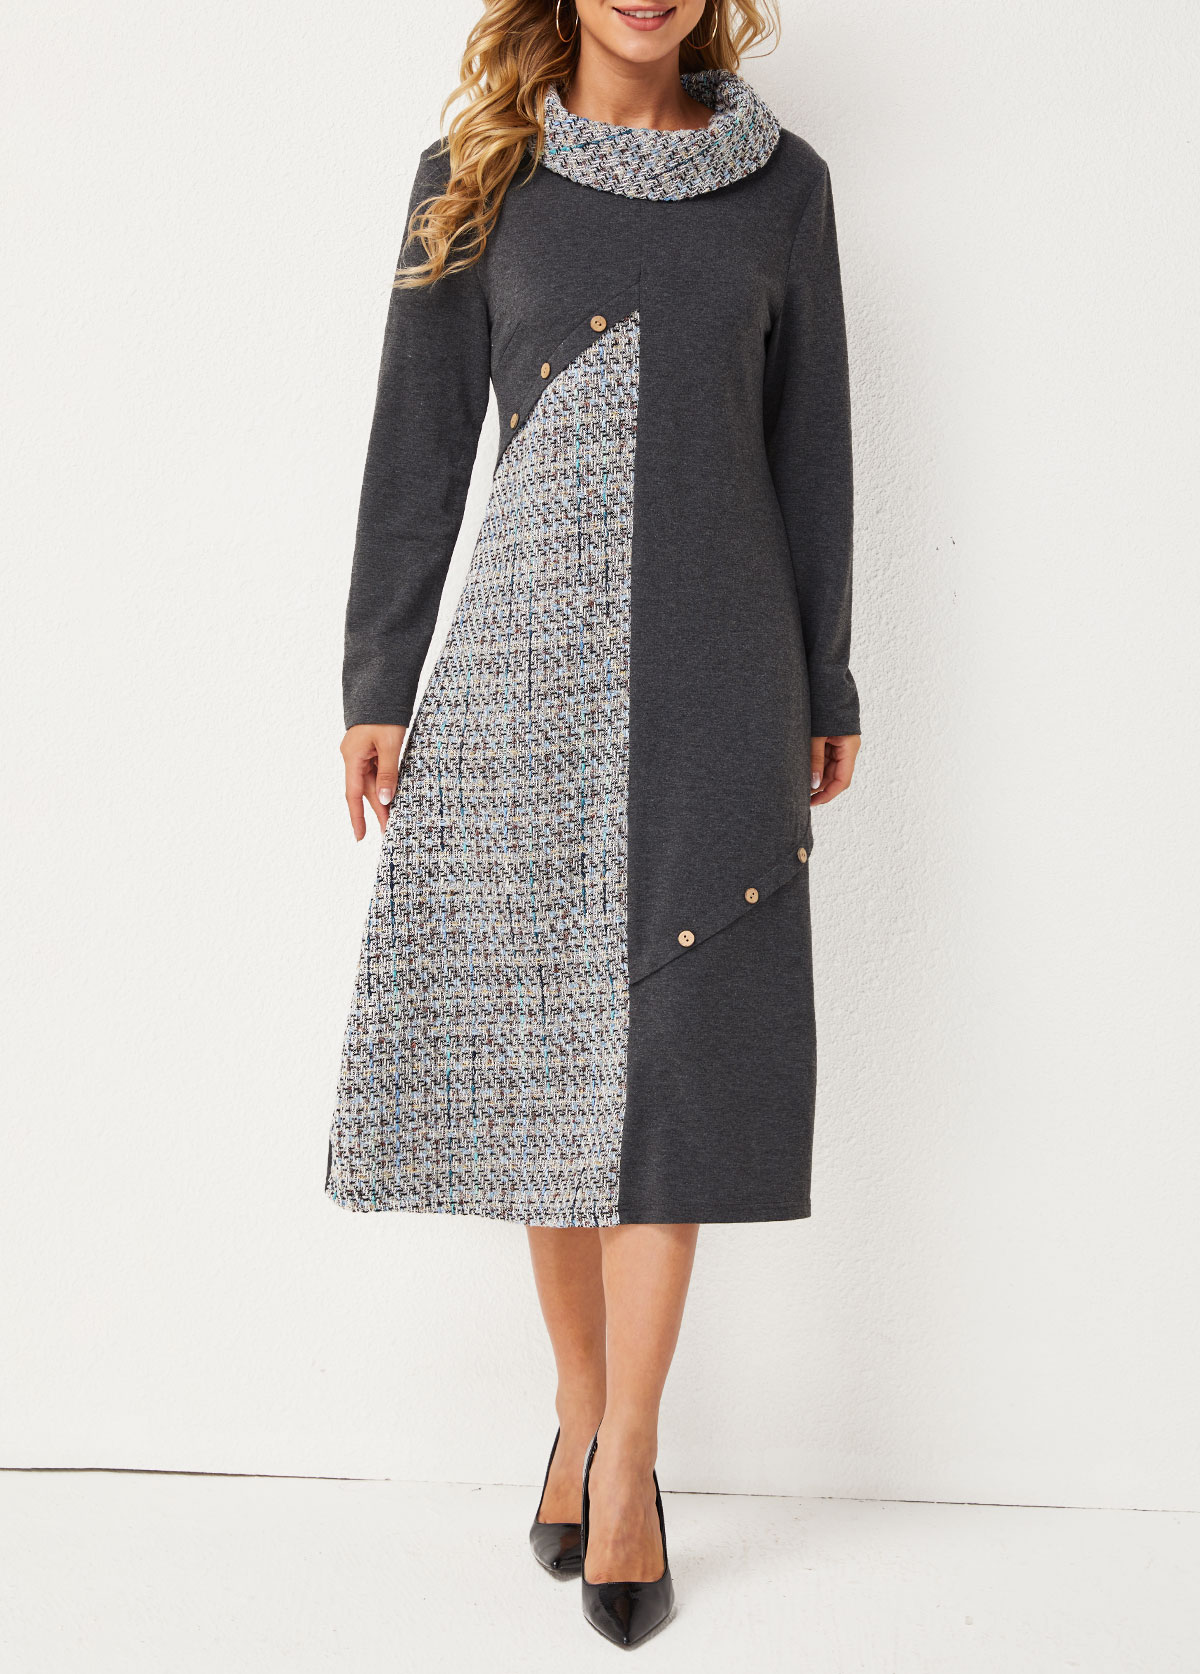 ROTITA Cowl Neck Inclined Button Contrast Dress